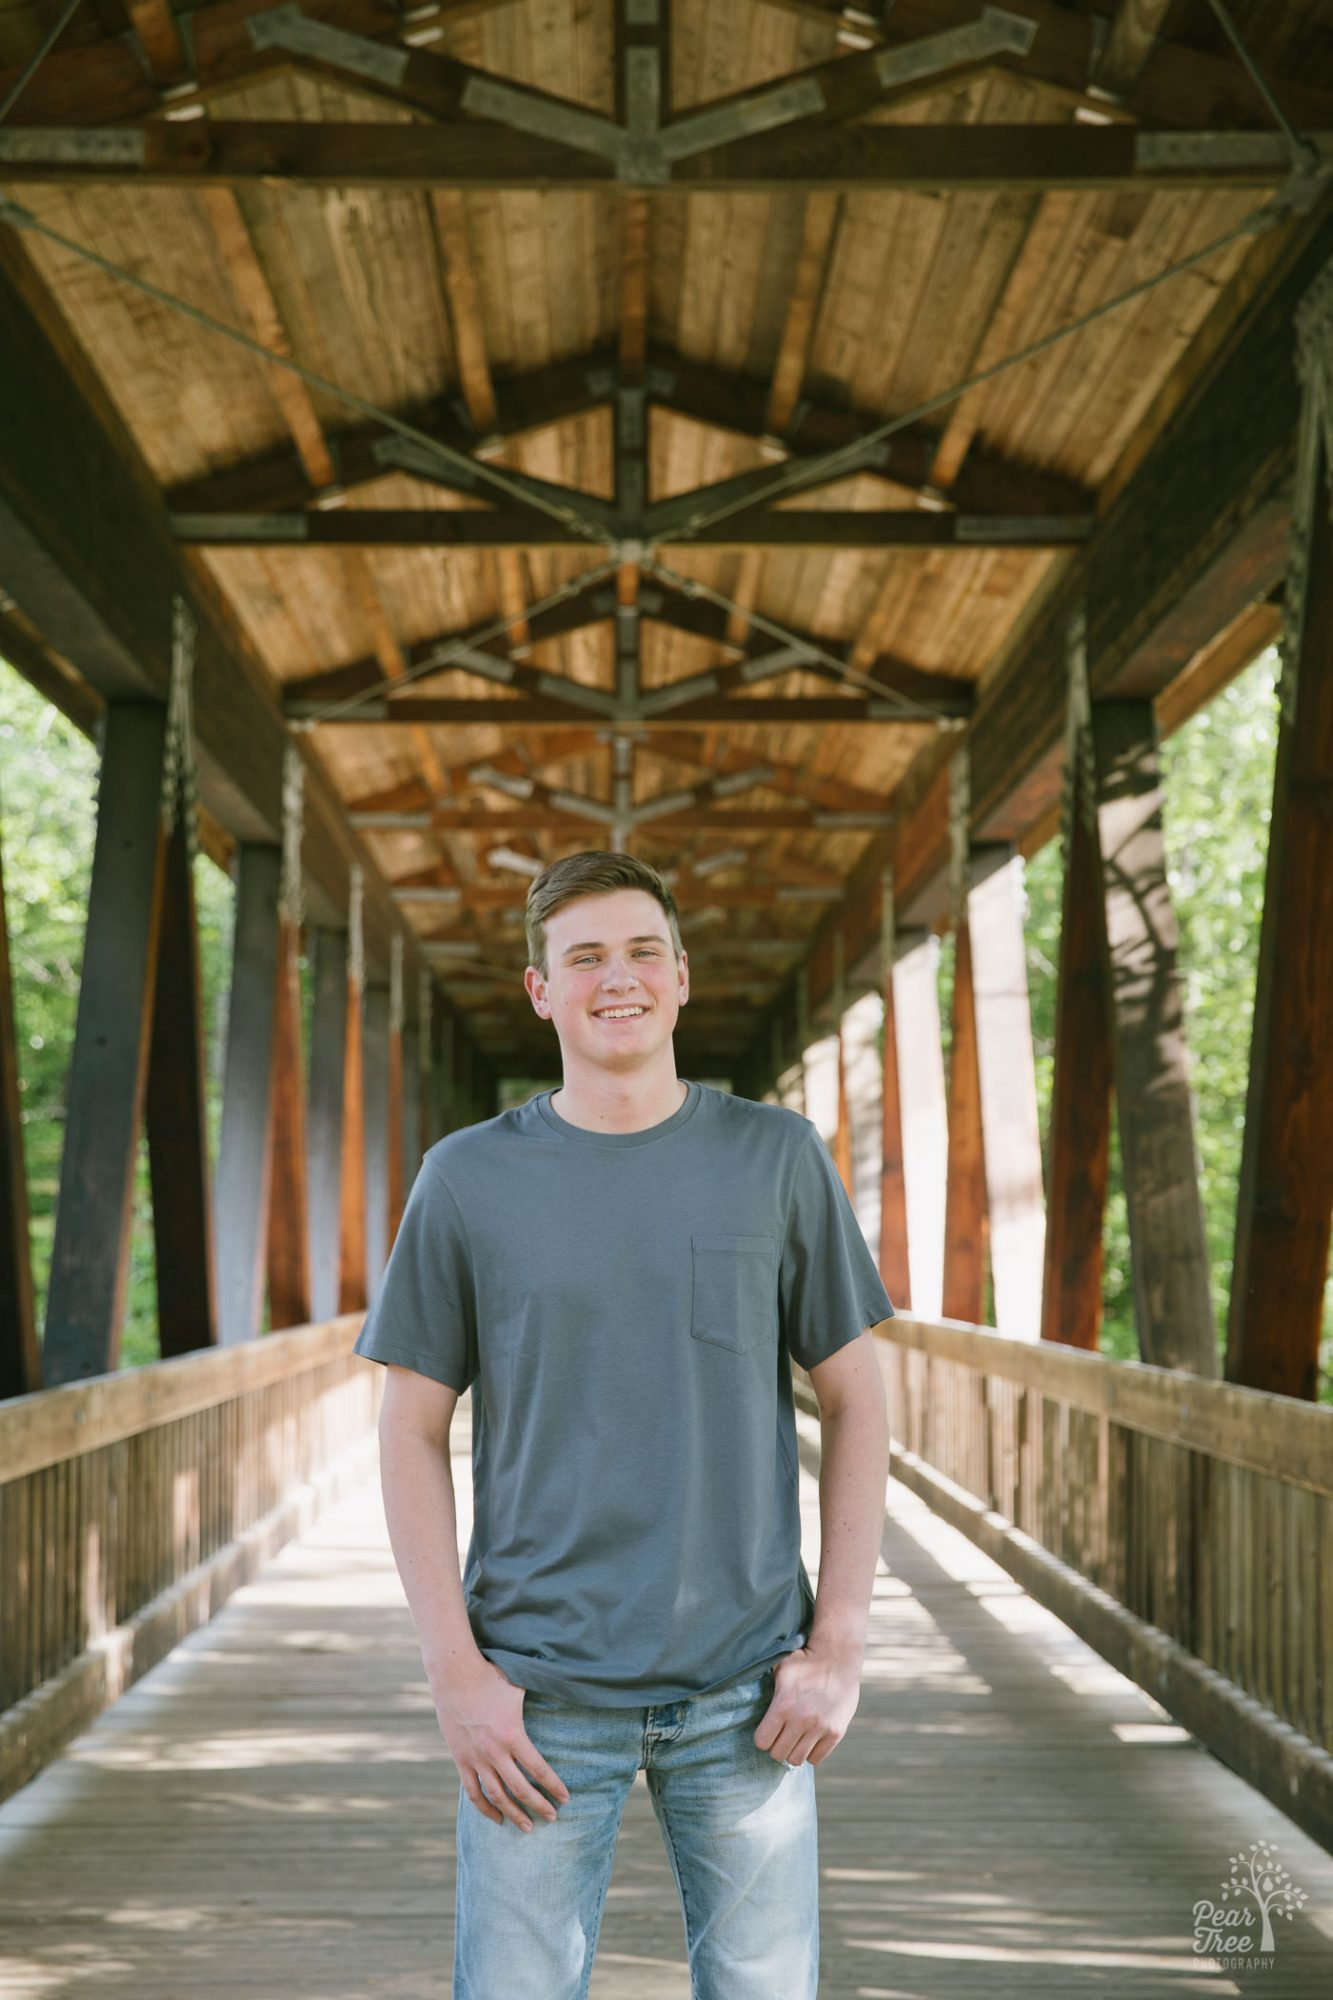 High school senior boy standing in covered bridge at Roswell Mill.